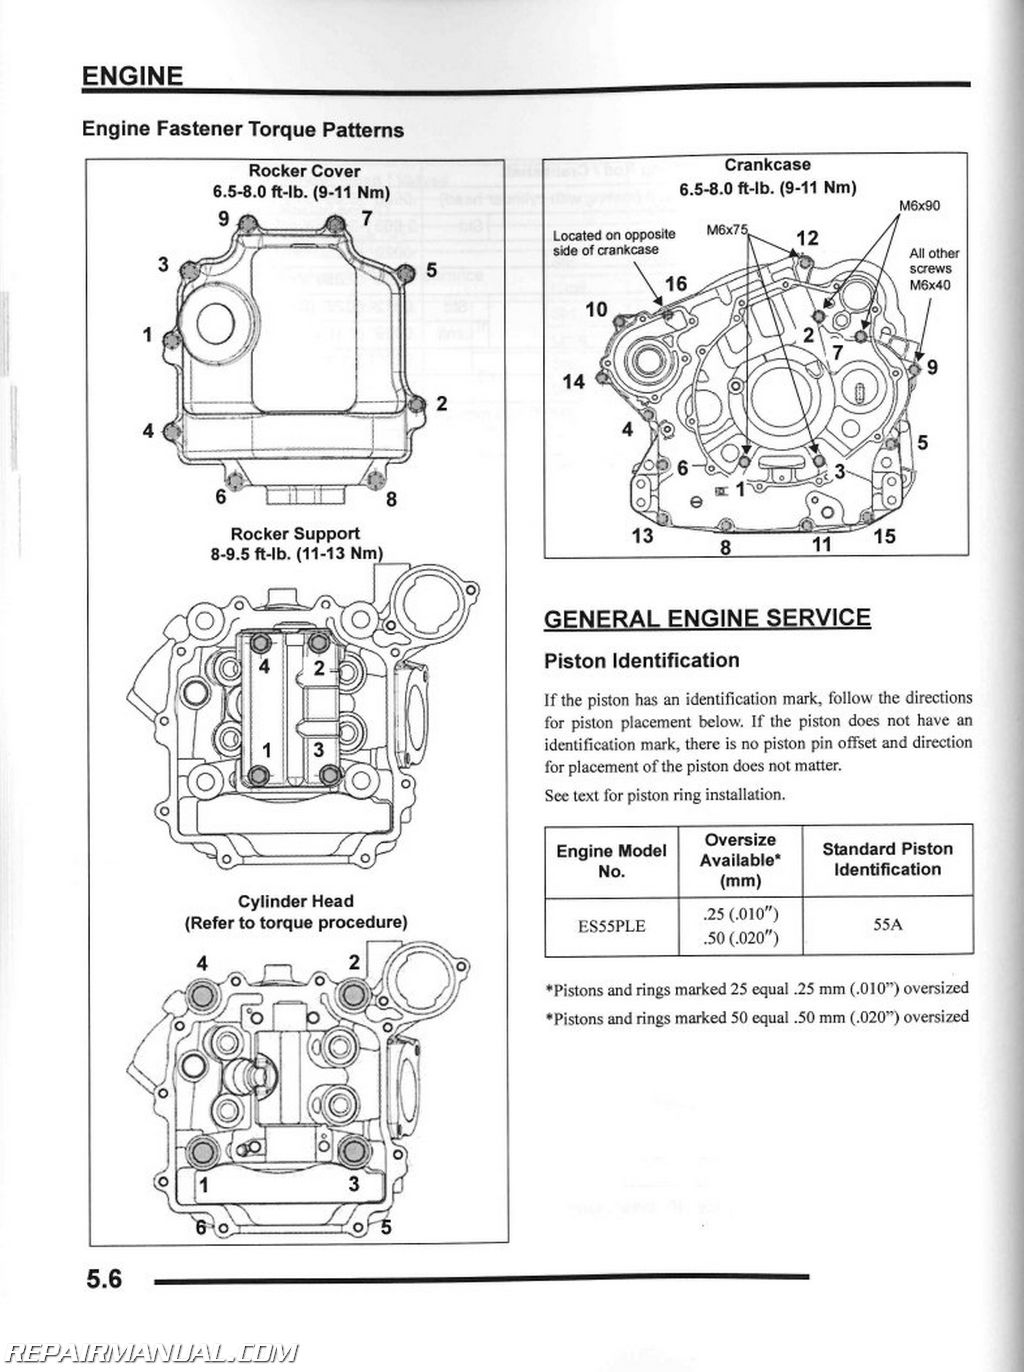 polaris scrambler 500 front wiring diagram 2010 polaris sportsman xp 550 atv service manual 2003 polaris scrambler 400 4x4 wiring diagram #7